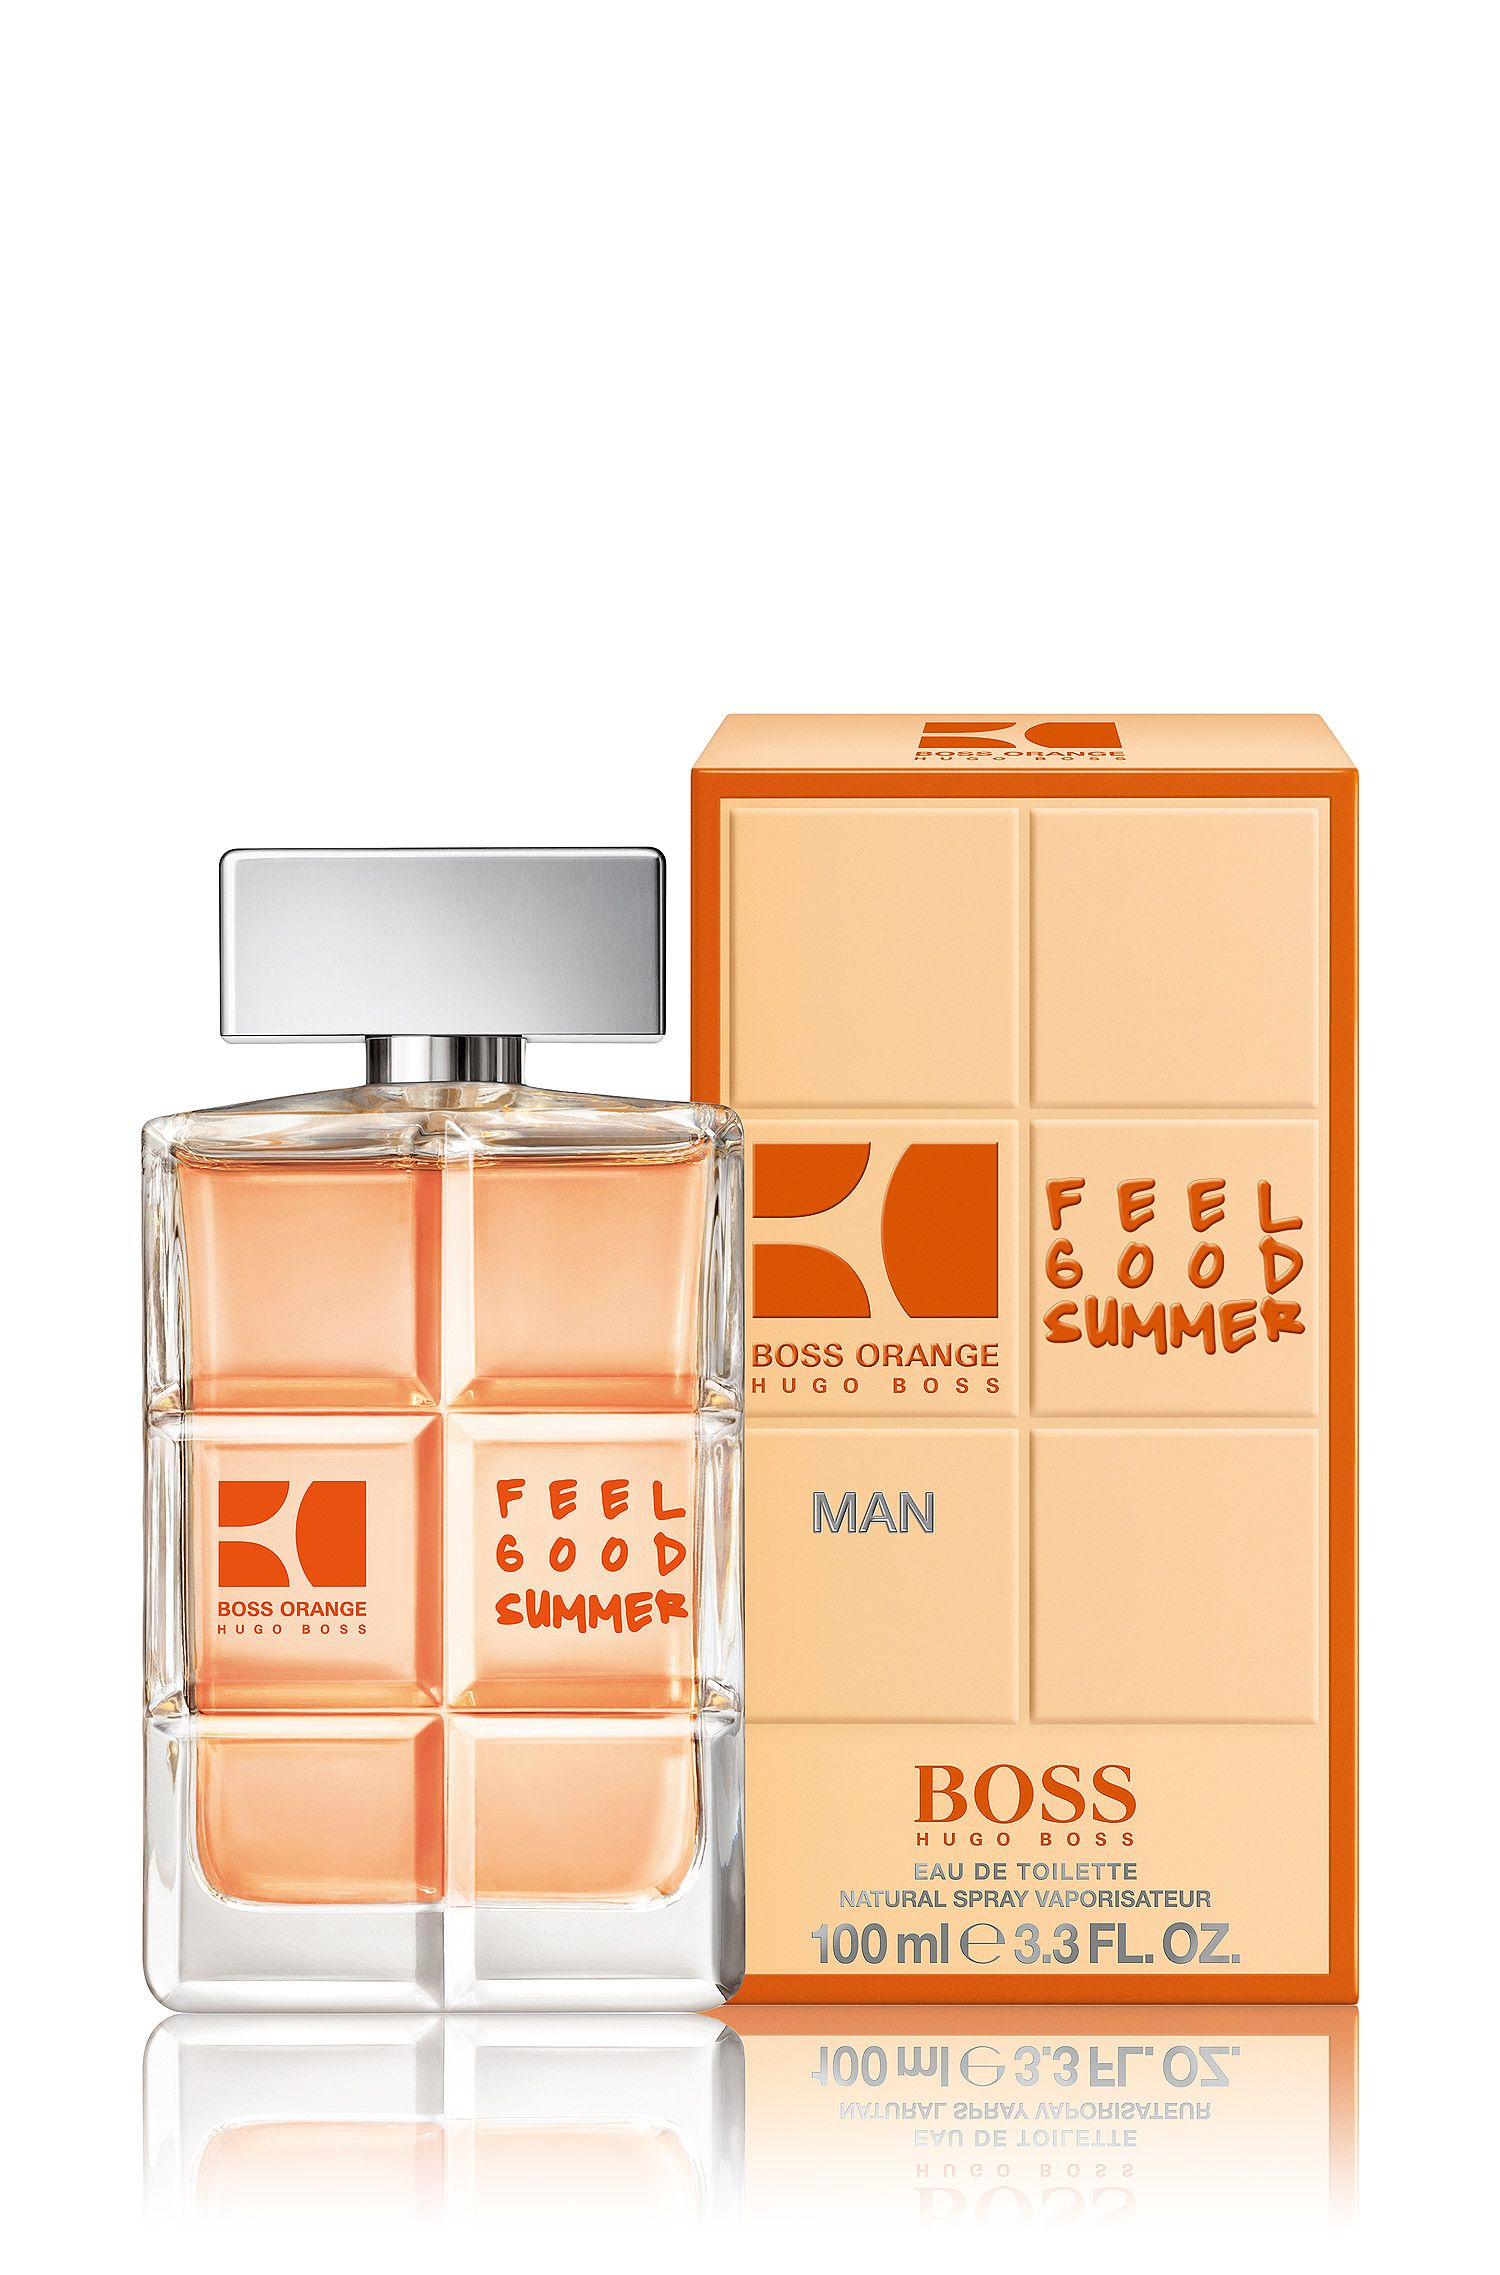 Feel Good Summer Eau de Toilette 100 ml